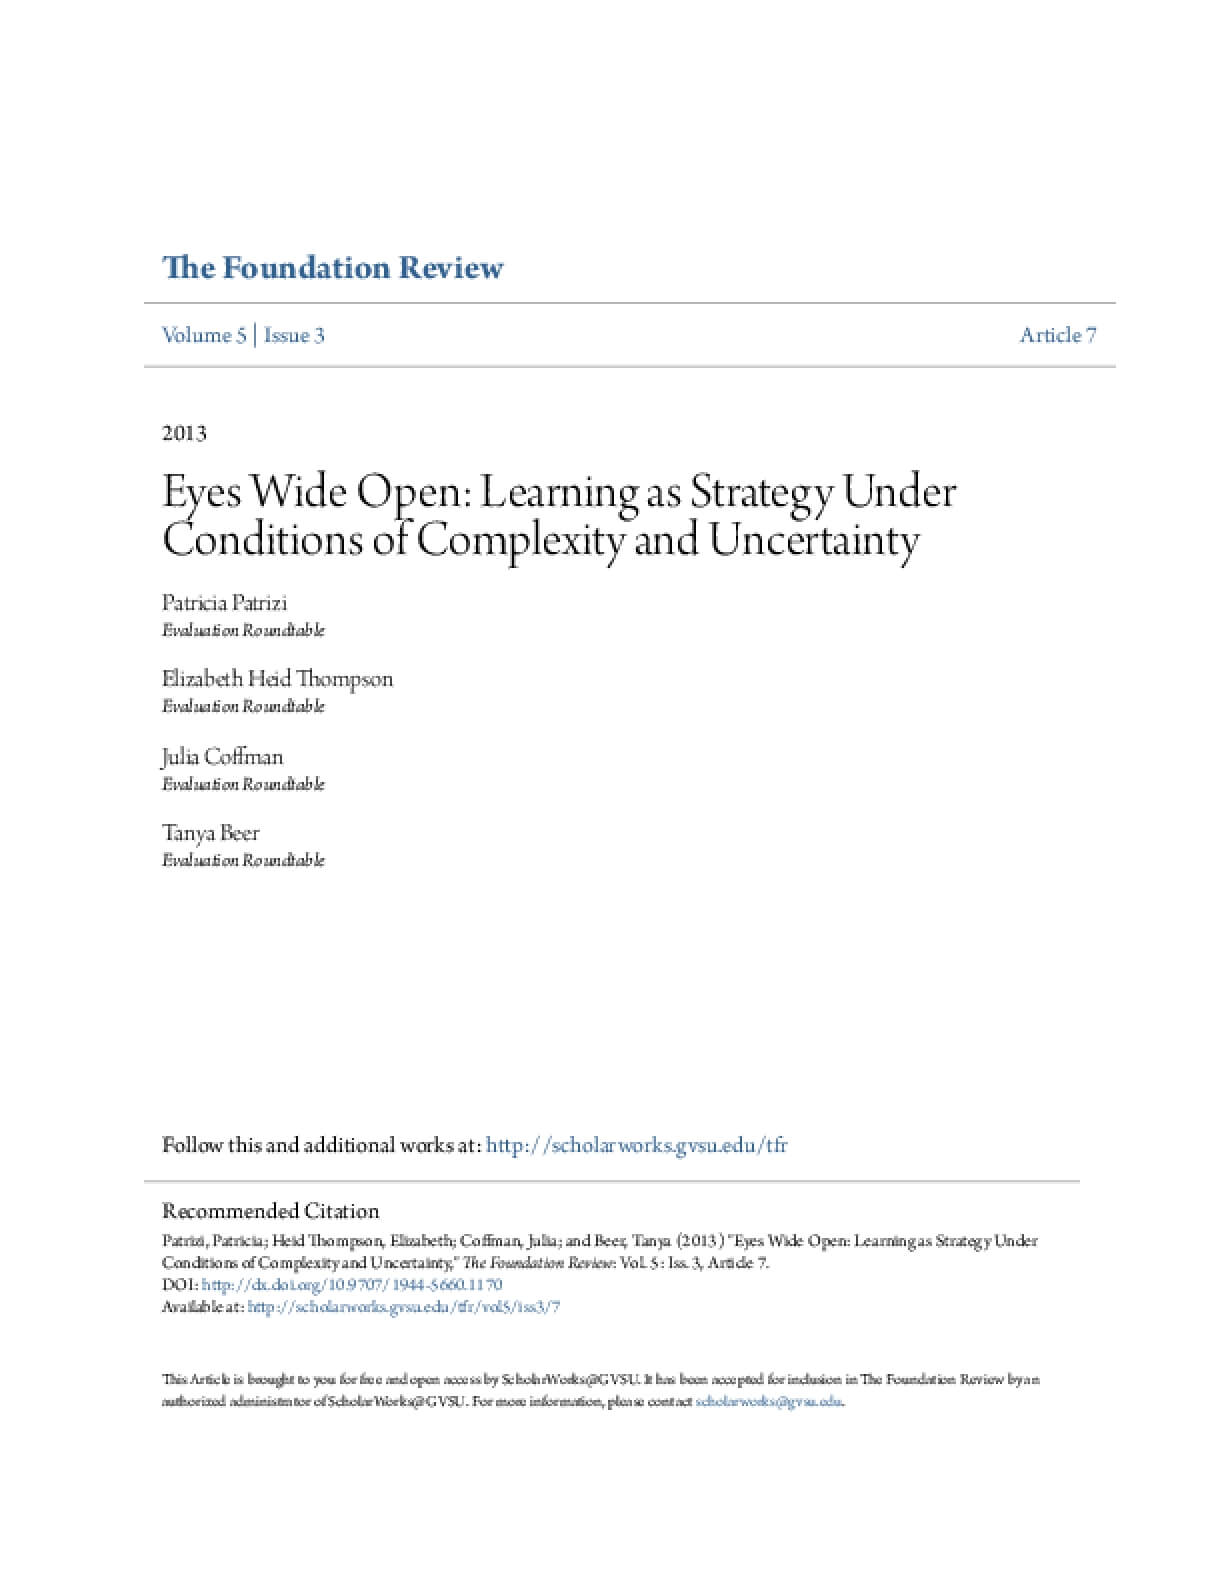 Eyes Wide Open: Learning as Strategy Under Conditions of Complexity and Uncertainty